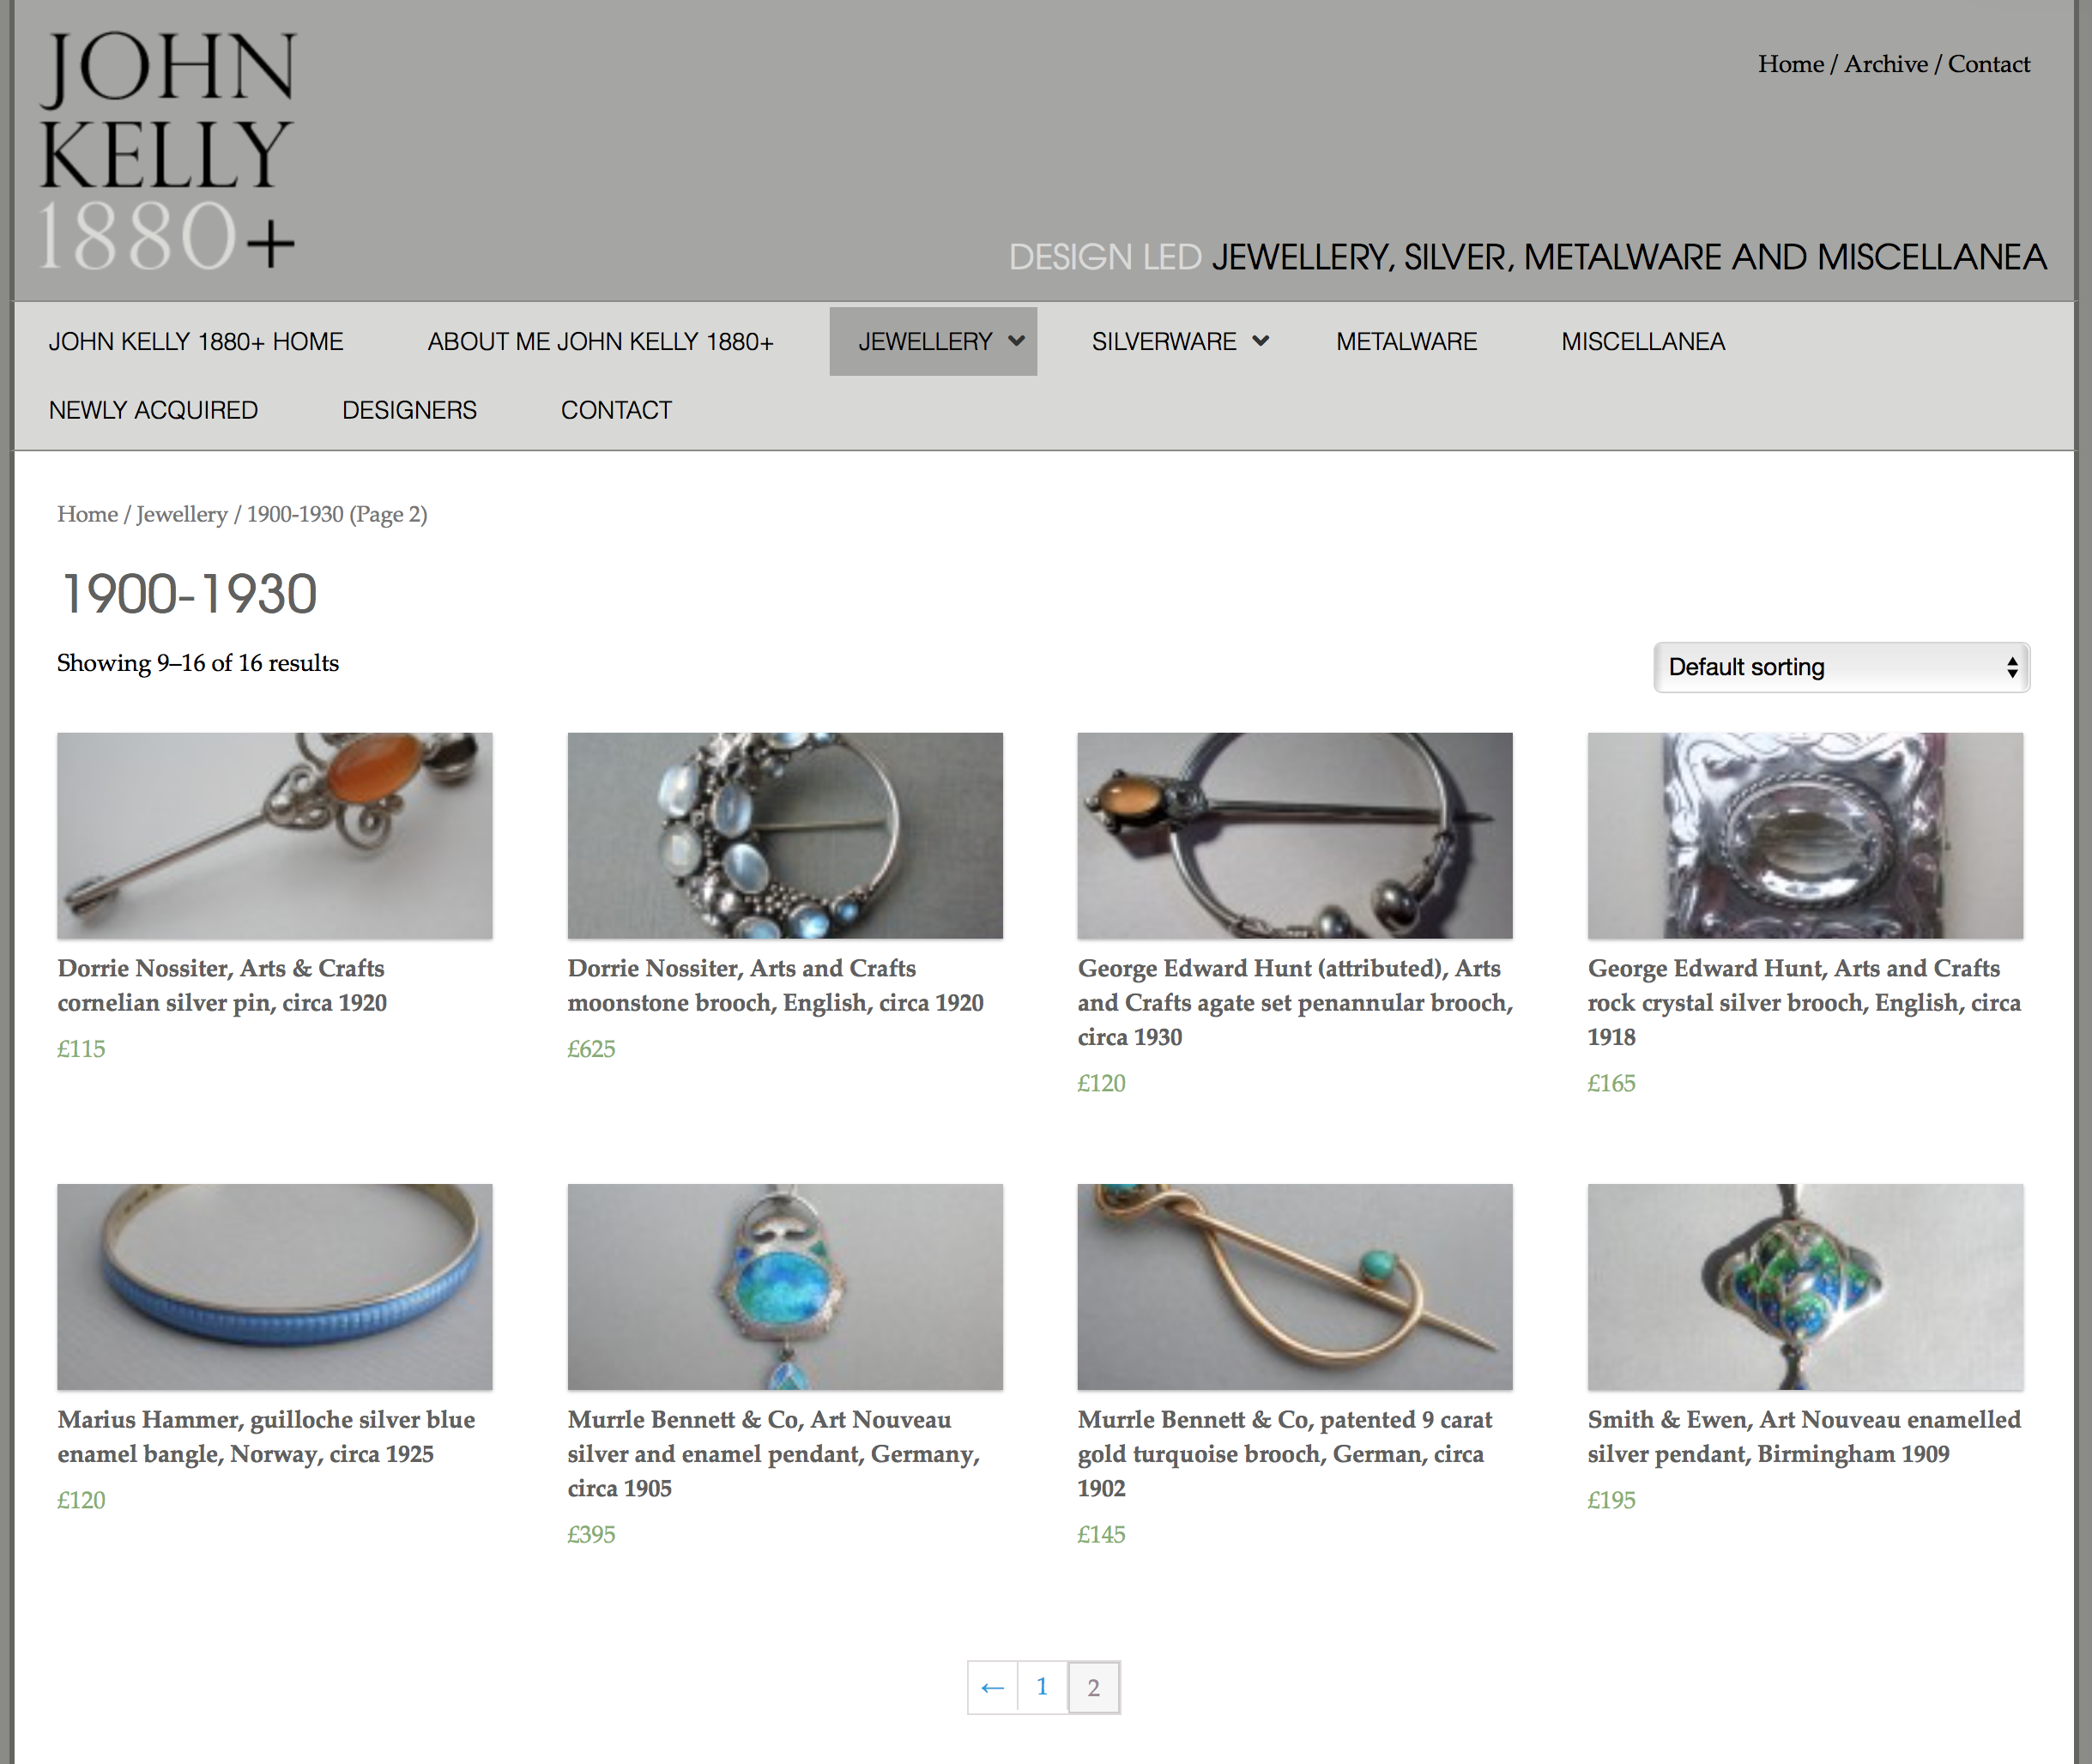 John Kelly's website page showing pieces by Dorrie